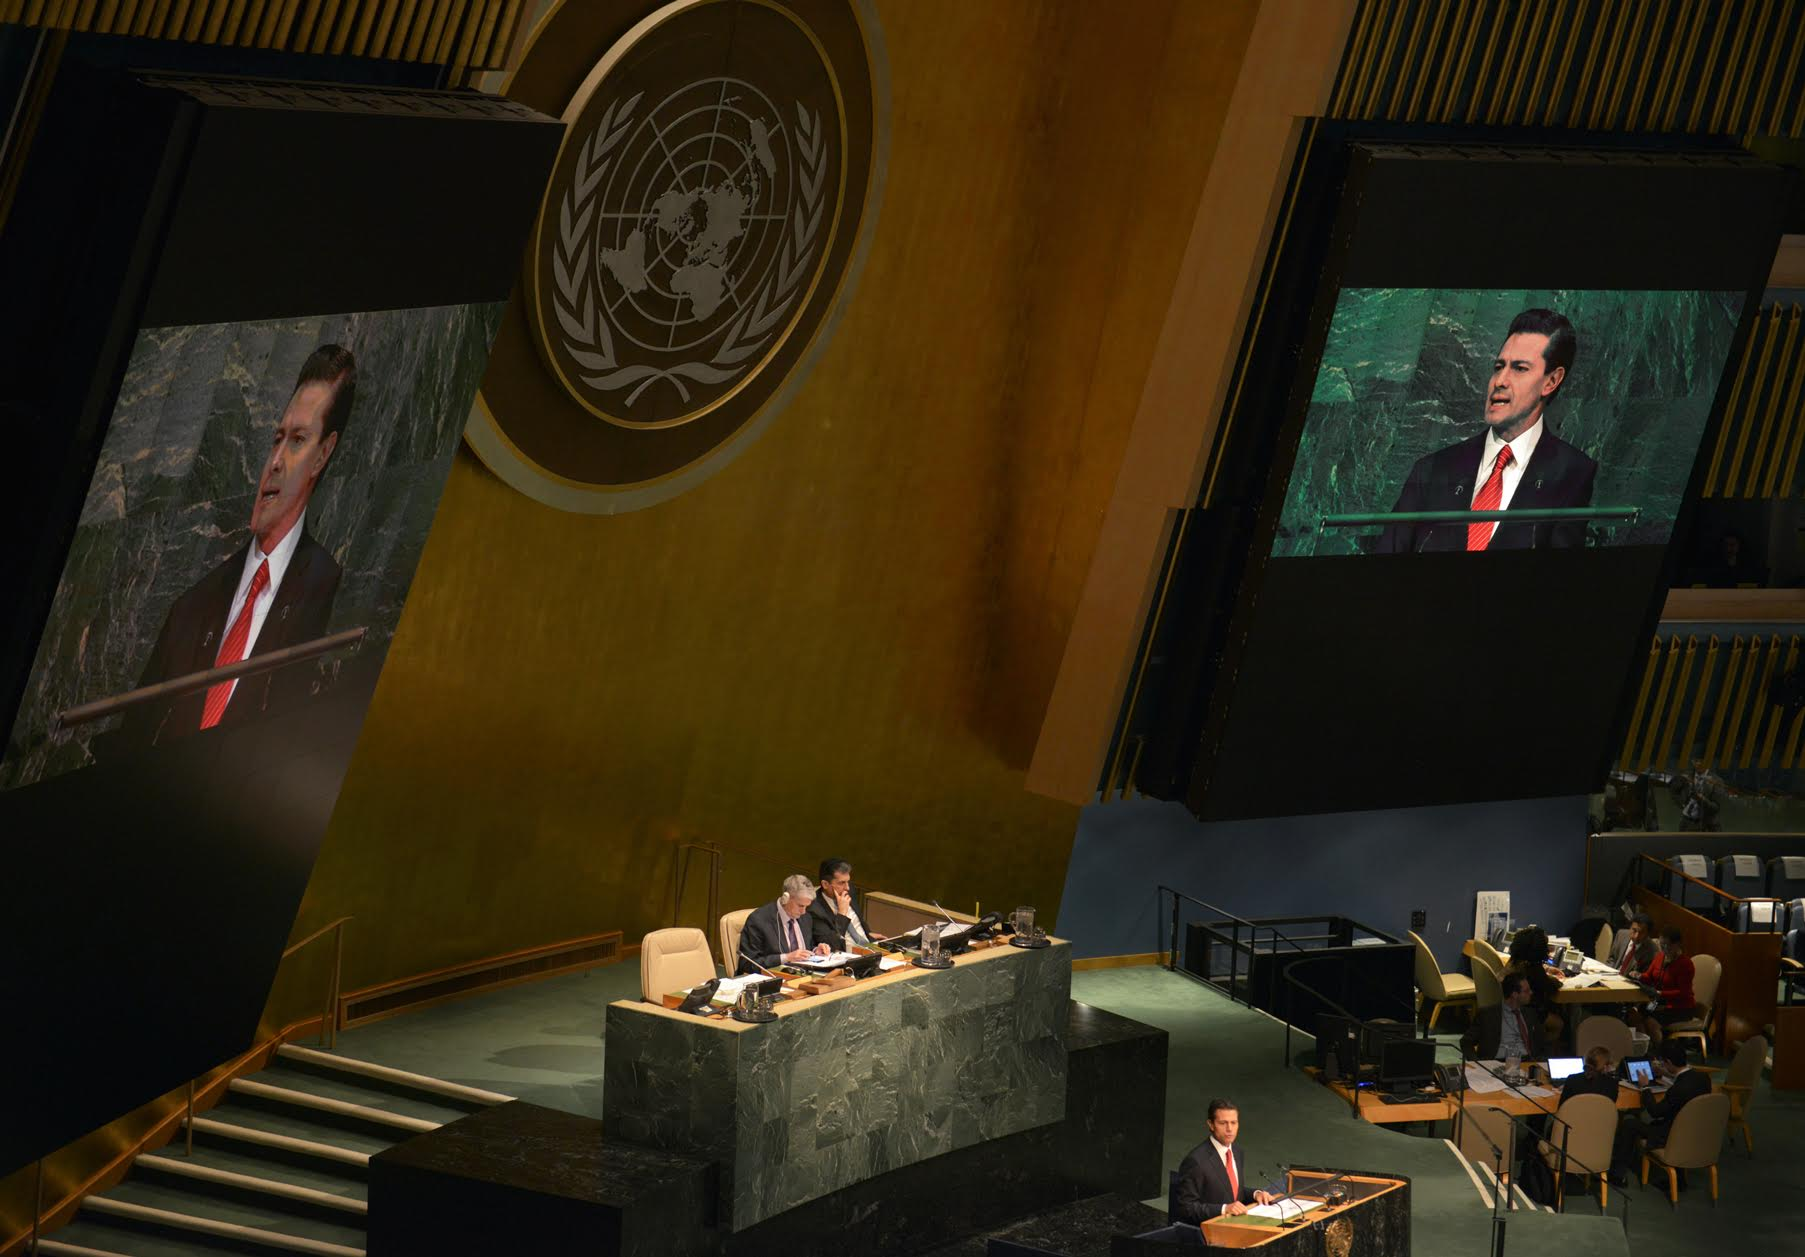 The president participated in the UN General Assembly Special Session on the World Drug Problem 2016.